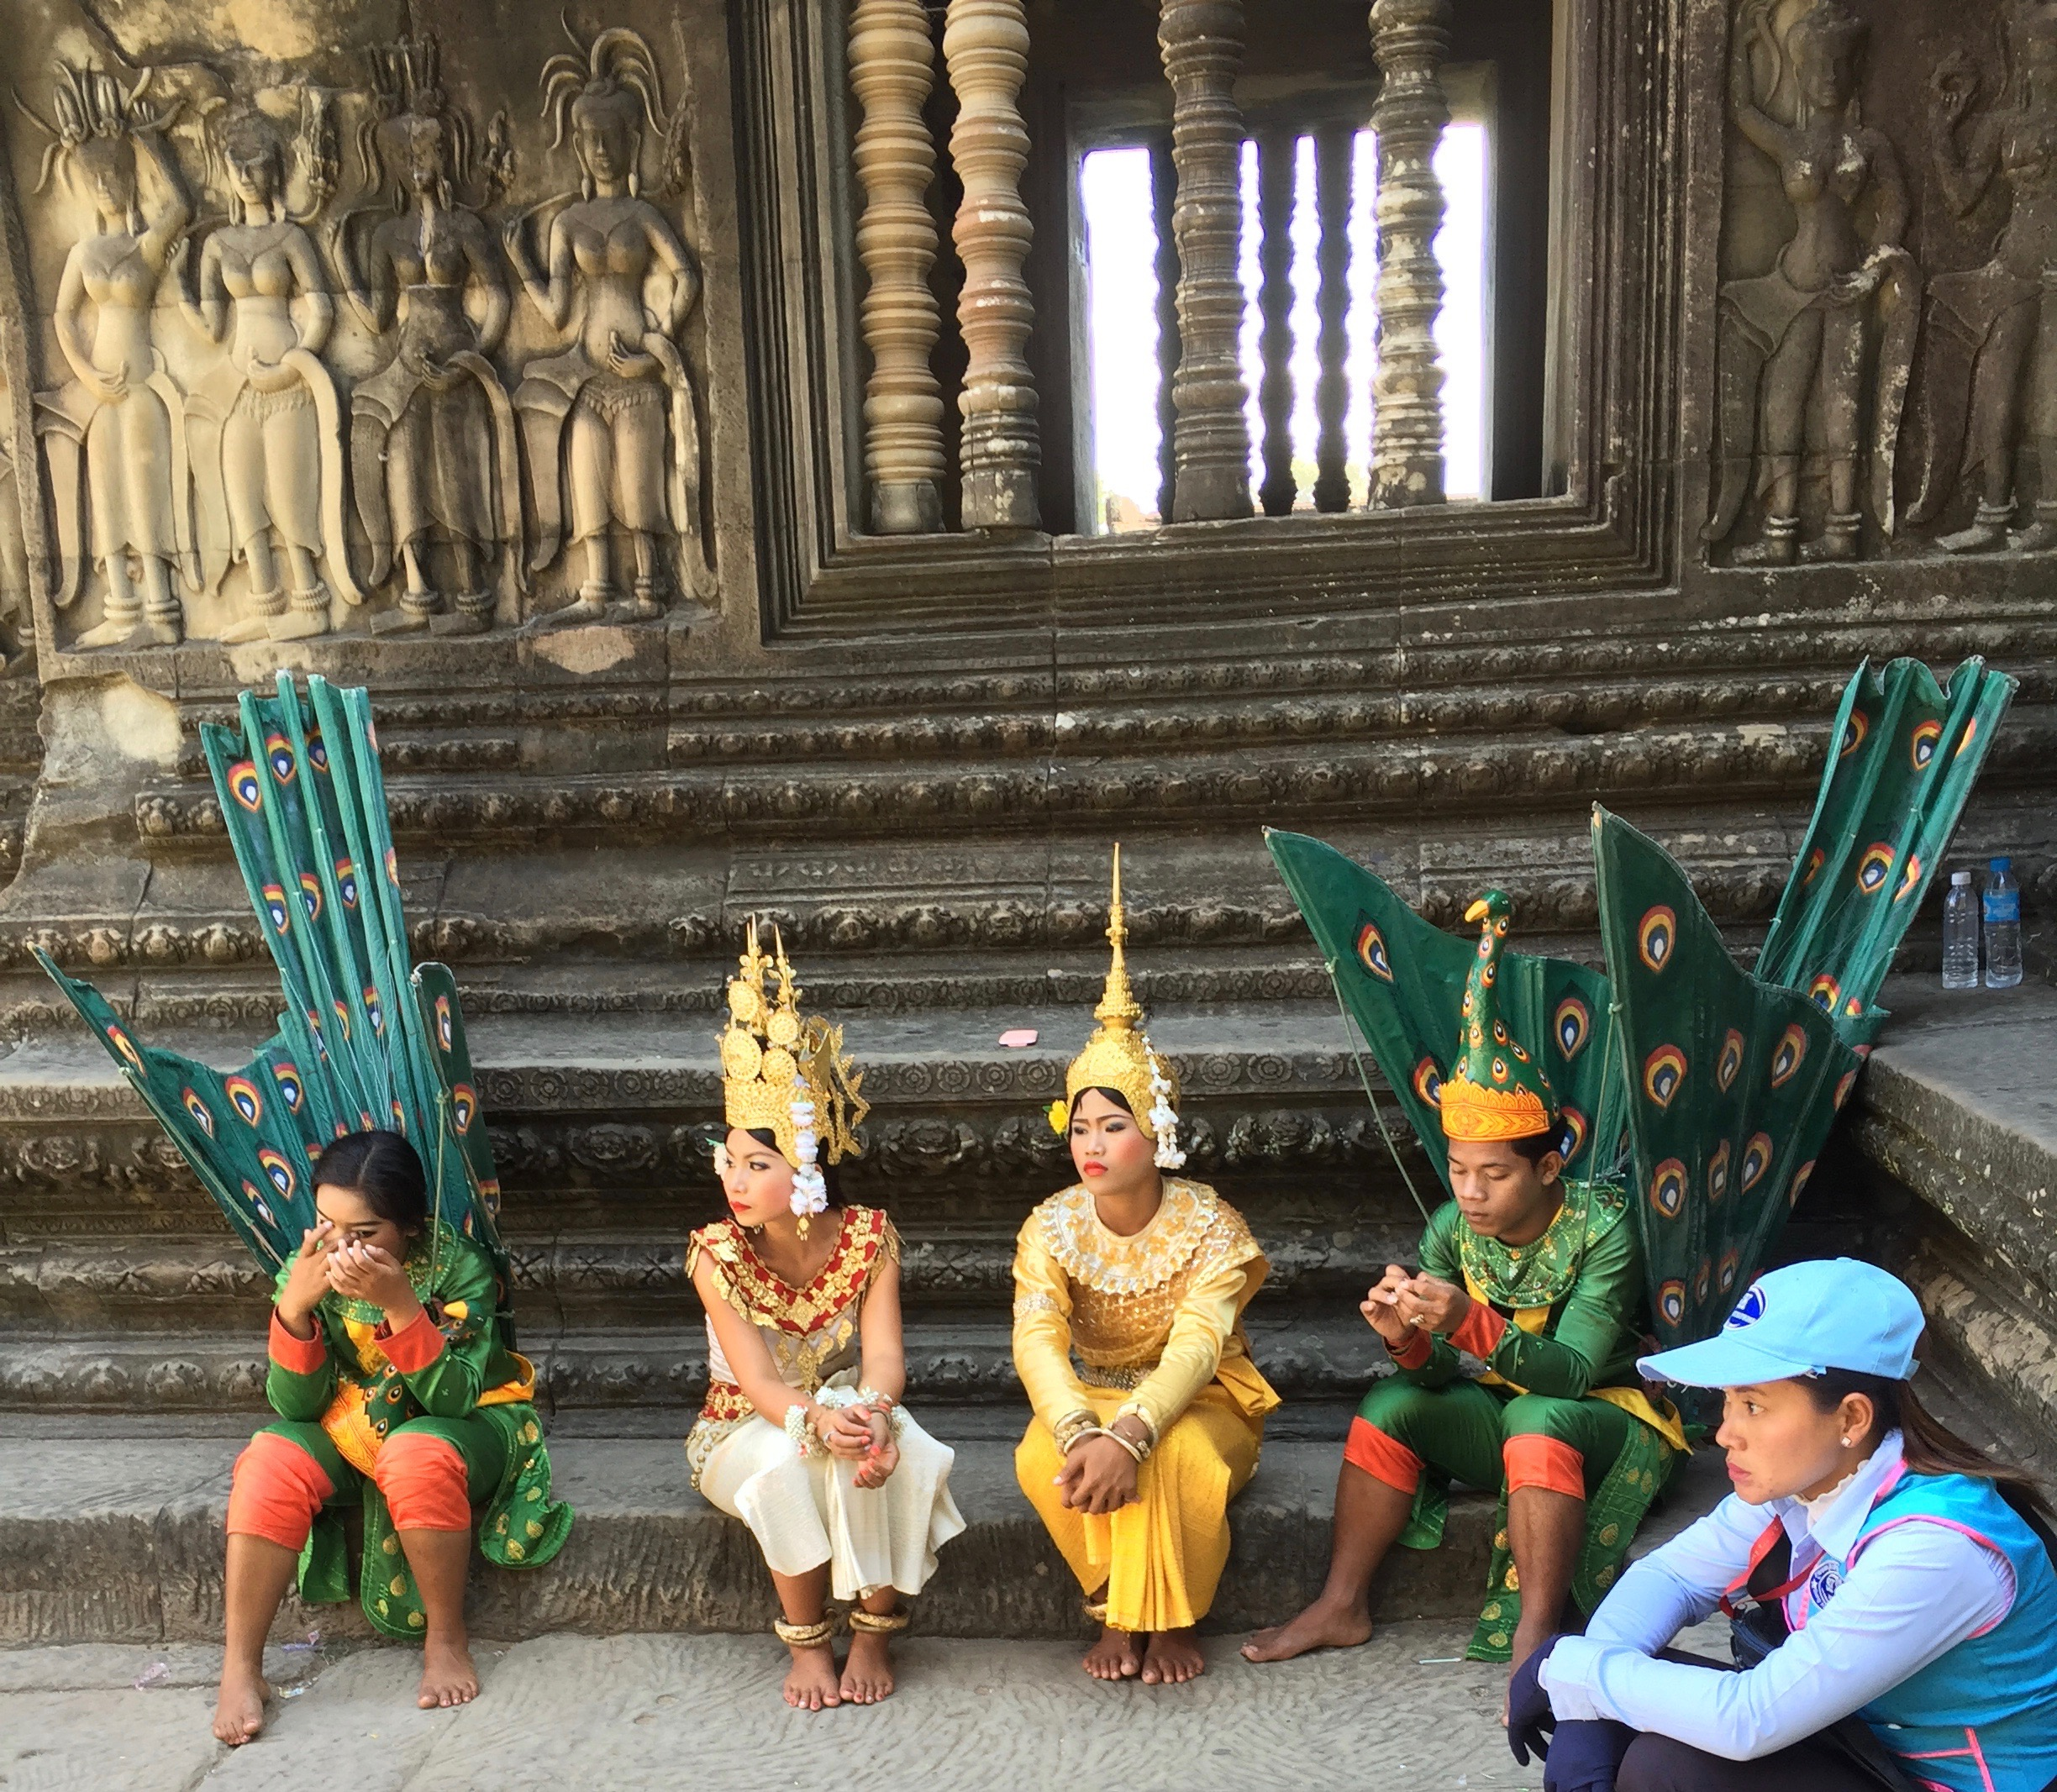 Intermission between dance performances at Angkor Wat.